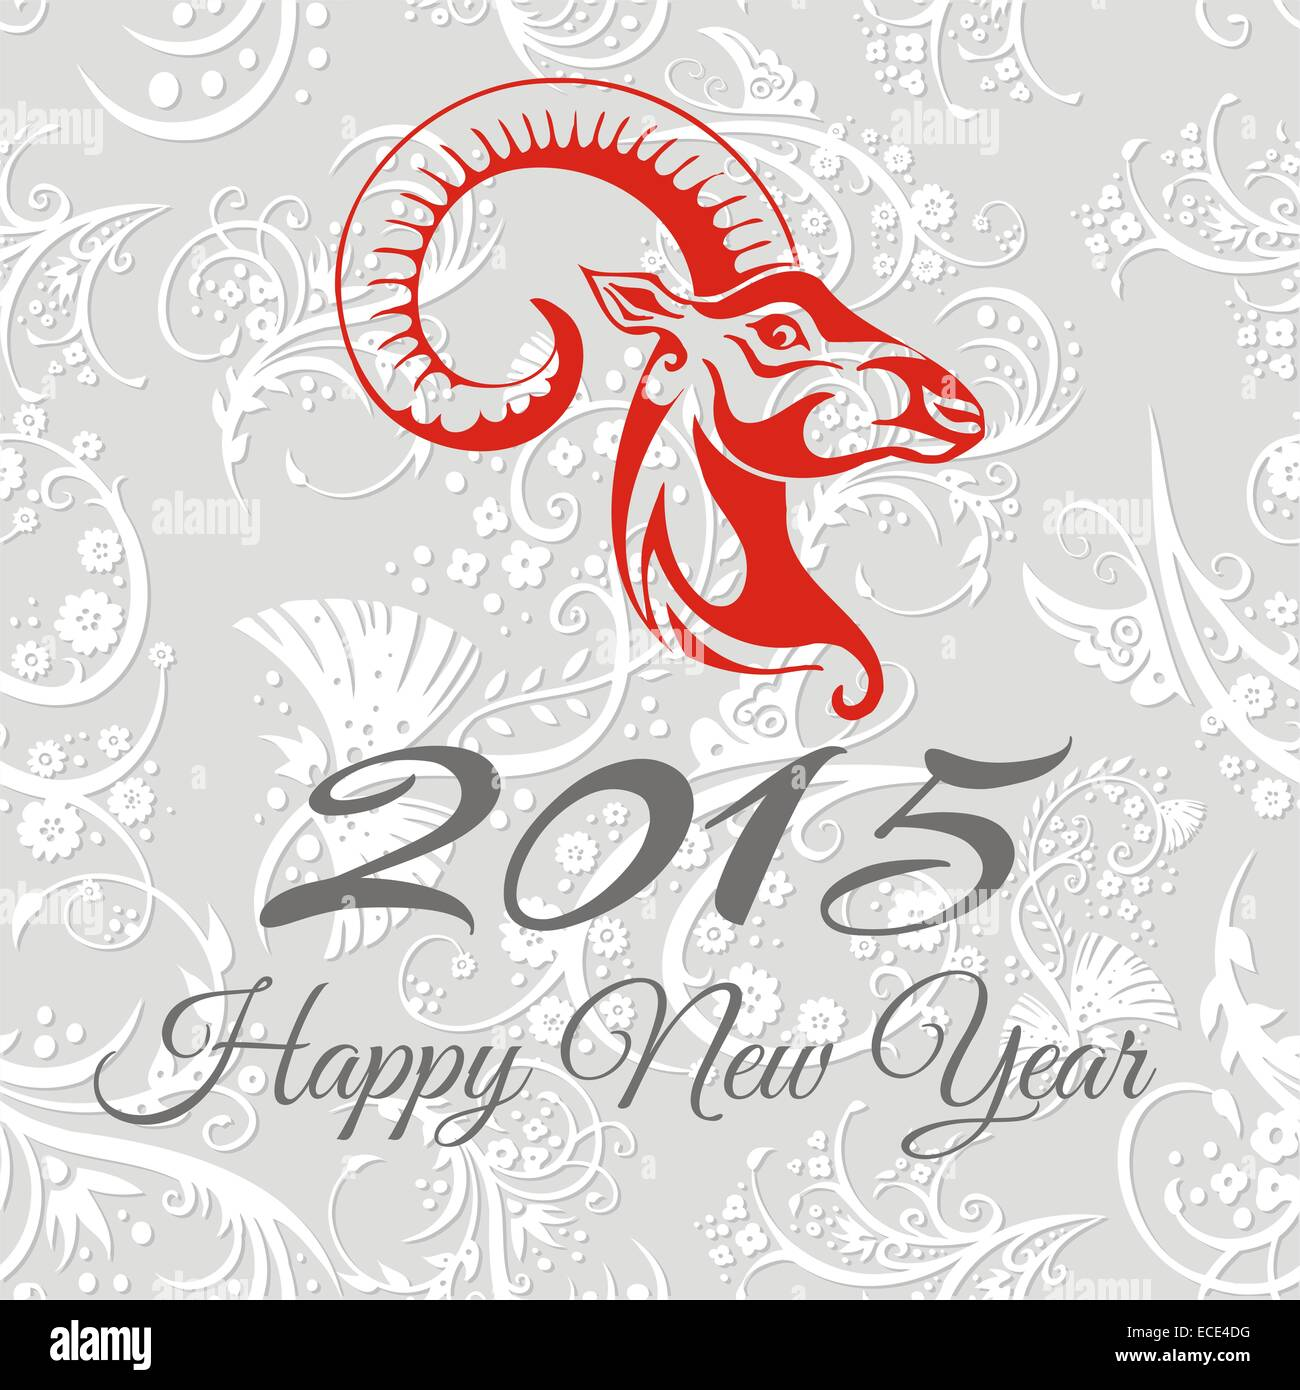 New year card with goat. vector illustration - Stock Image